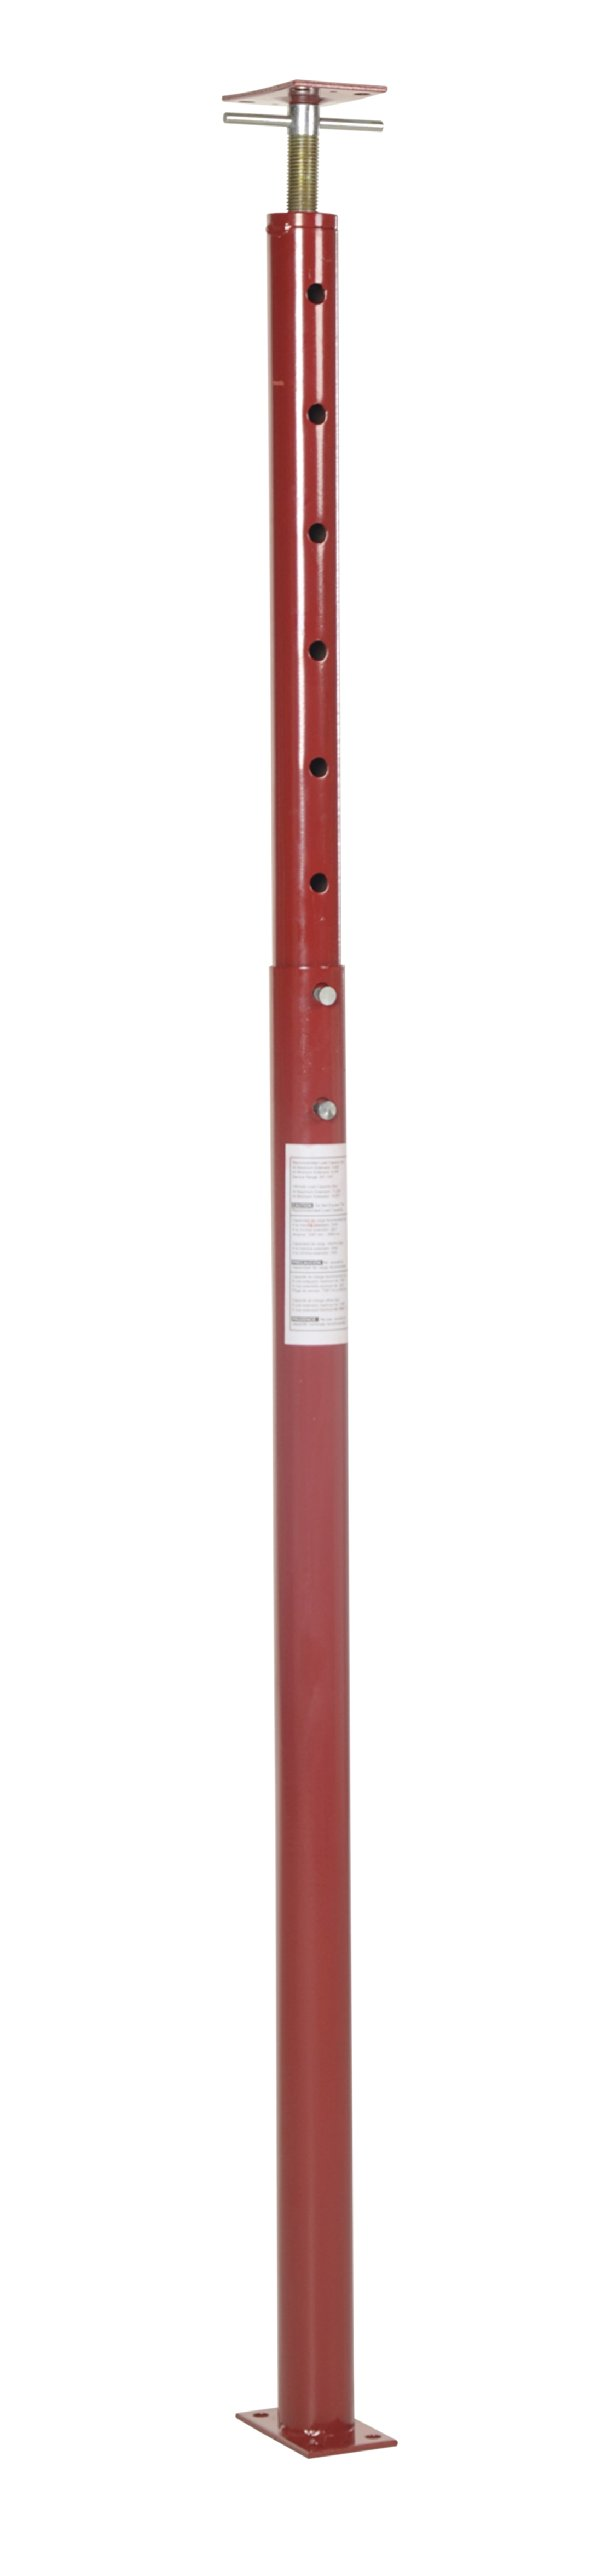 Vestil FJB-100 Basement Floor Jack, 54'' - 100'' Height Range, Maximum Height Capacity (lbs.) 5600, Minimum Height Capacity (lbs.) 8438